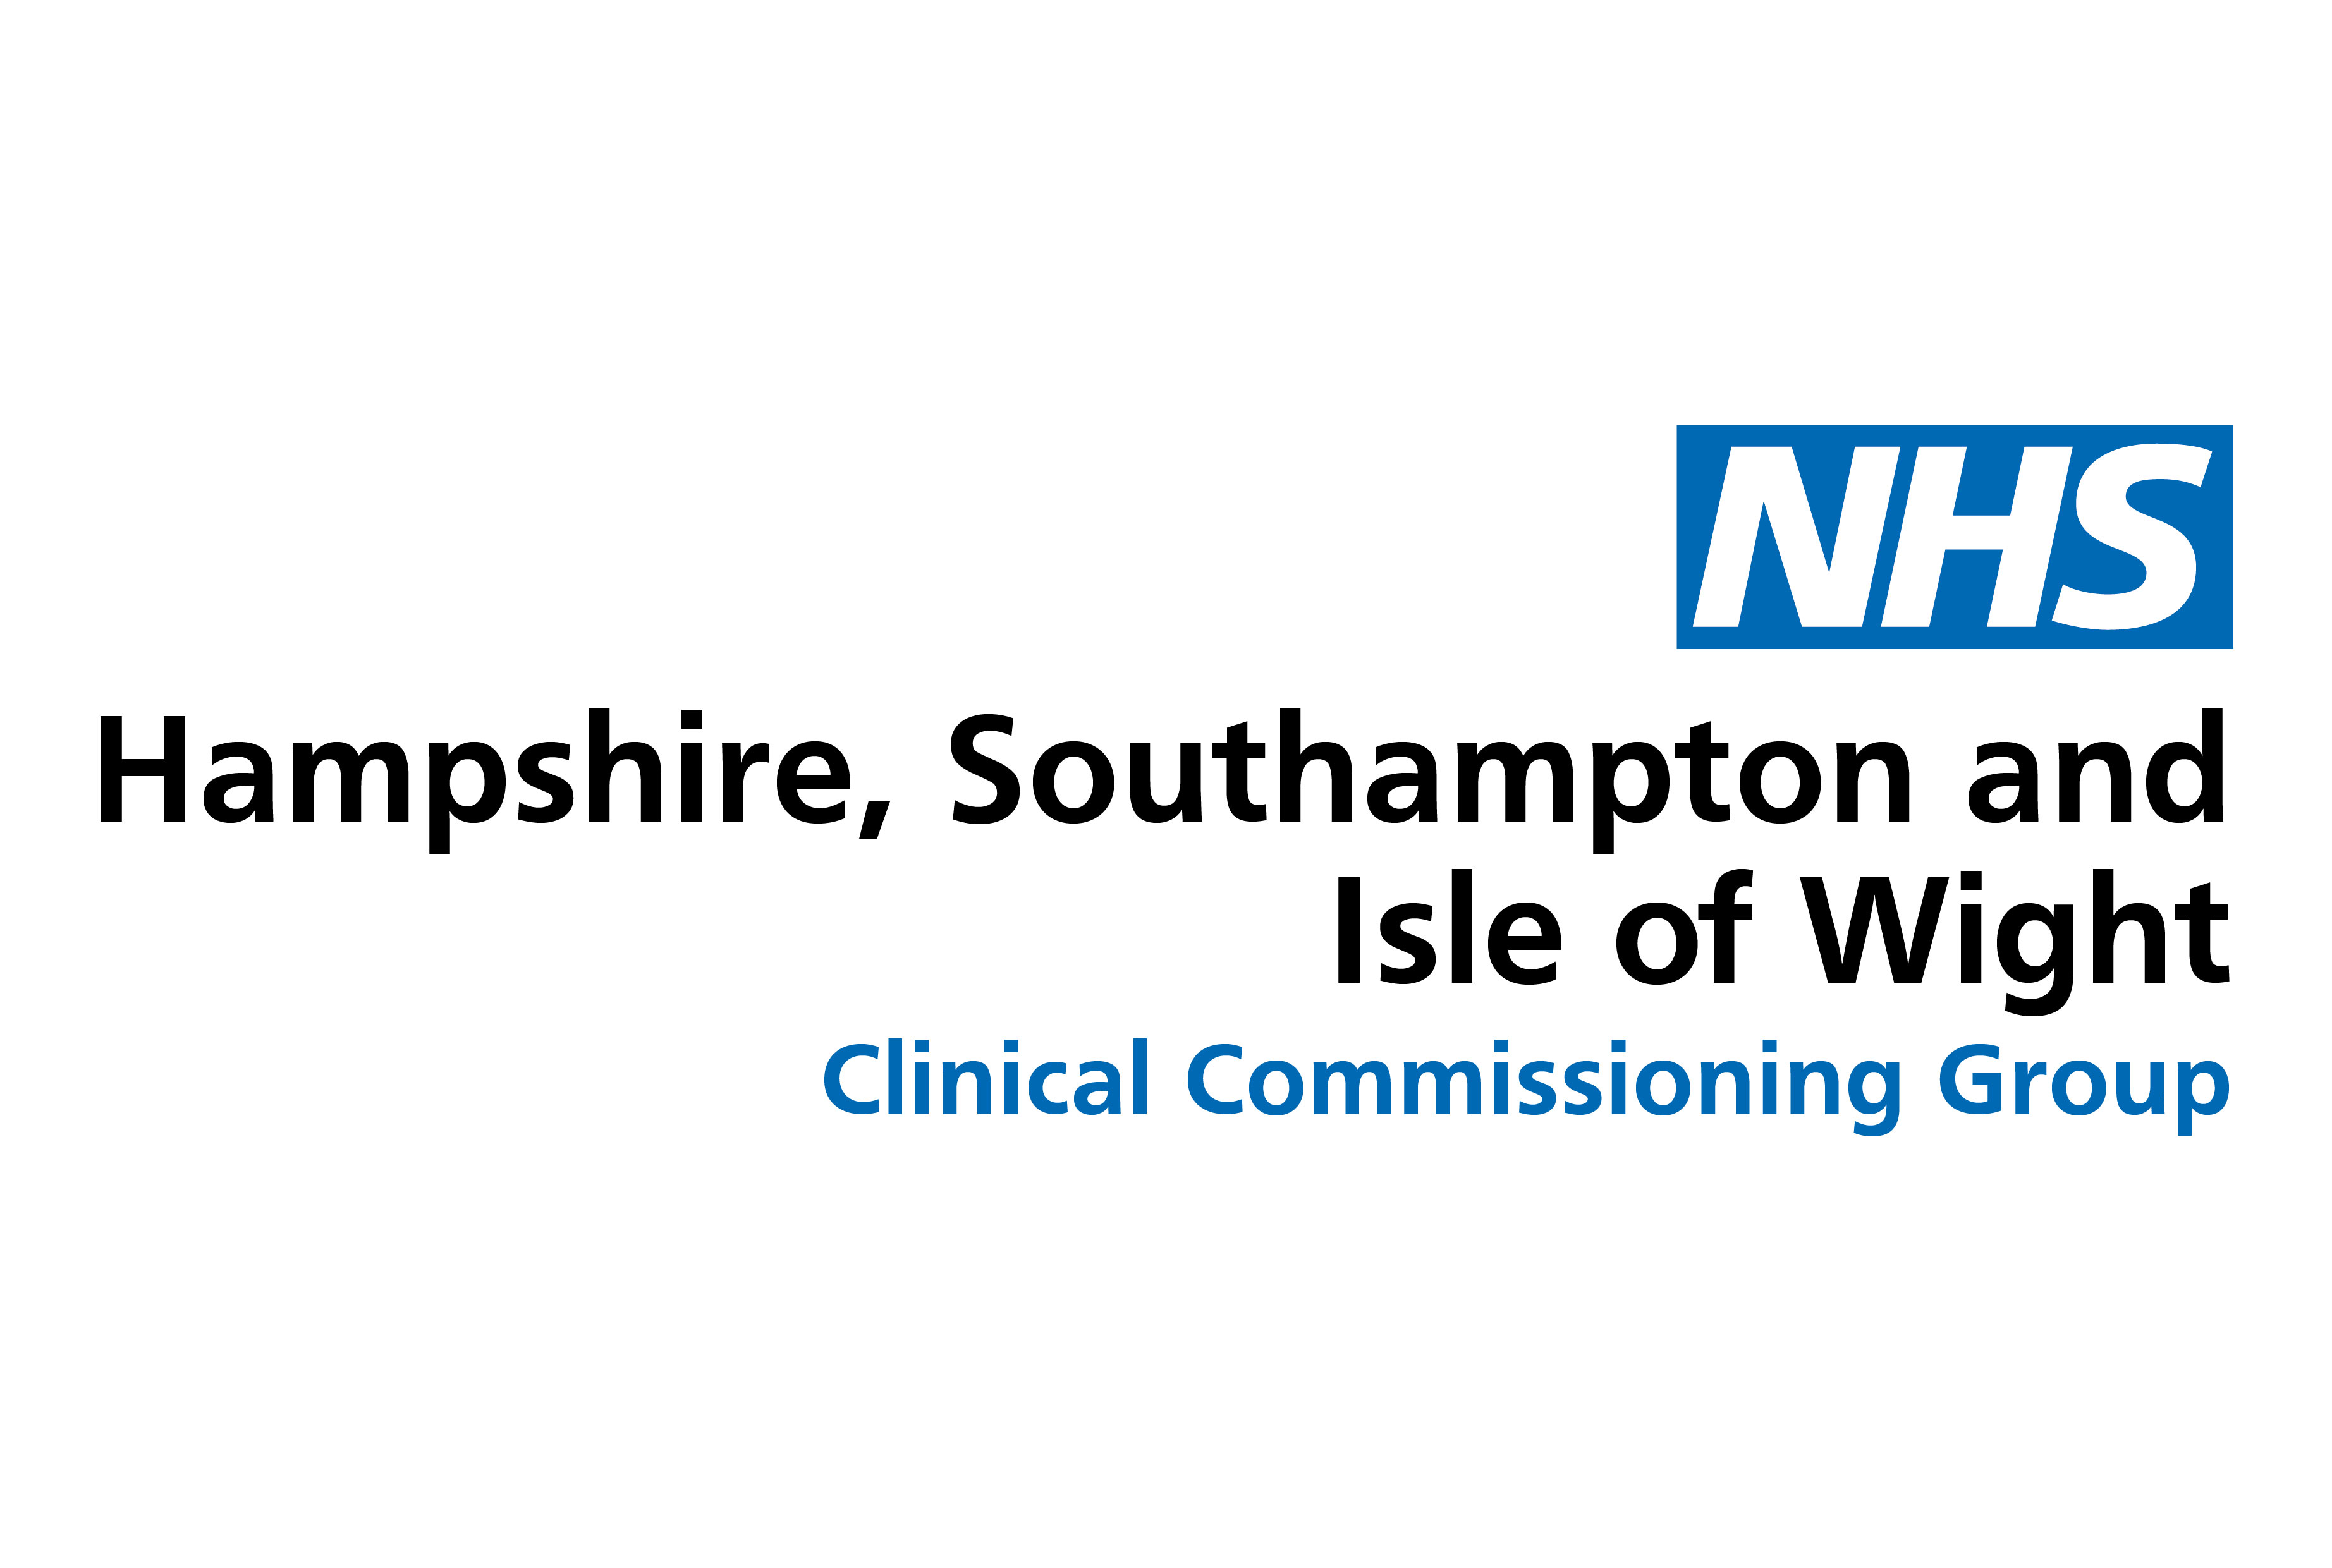 Hampshire, Southampton and Isle of Wight CCG